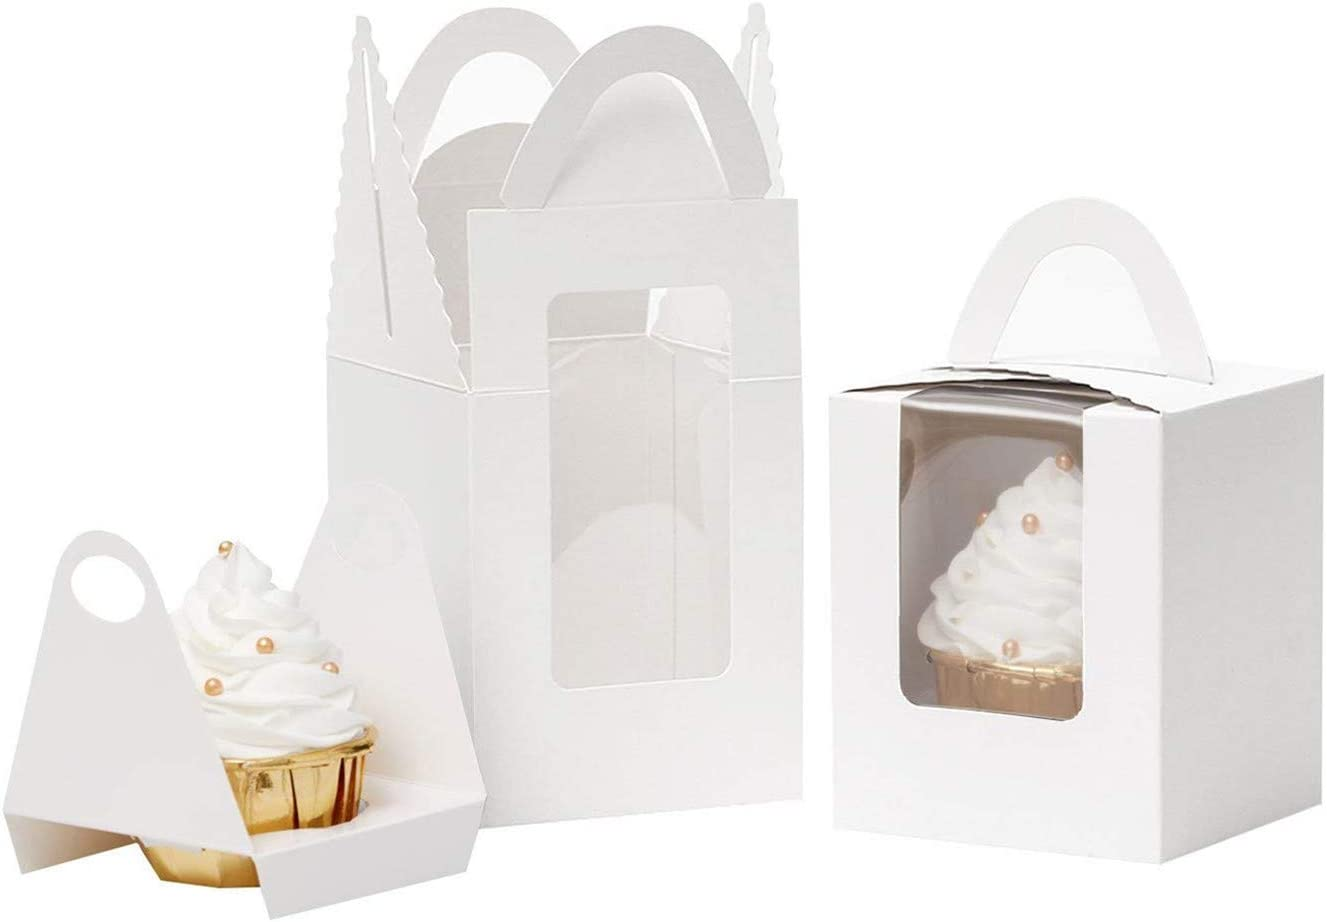 Walk Arrive Cupcake Box Clear Display Window with Strong Handle and Secure Insert Cake Box Bakery Box Cupcake Carrier Cupcake Holder Container for Baby Shower Wedding Birthday Festival Party(20,White)